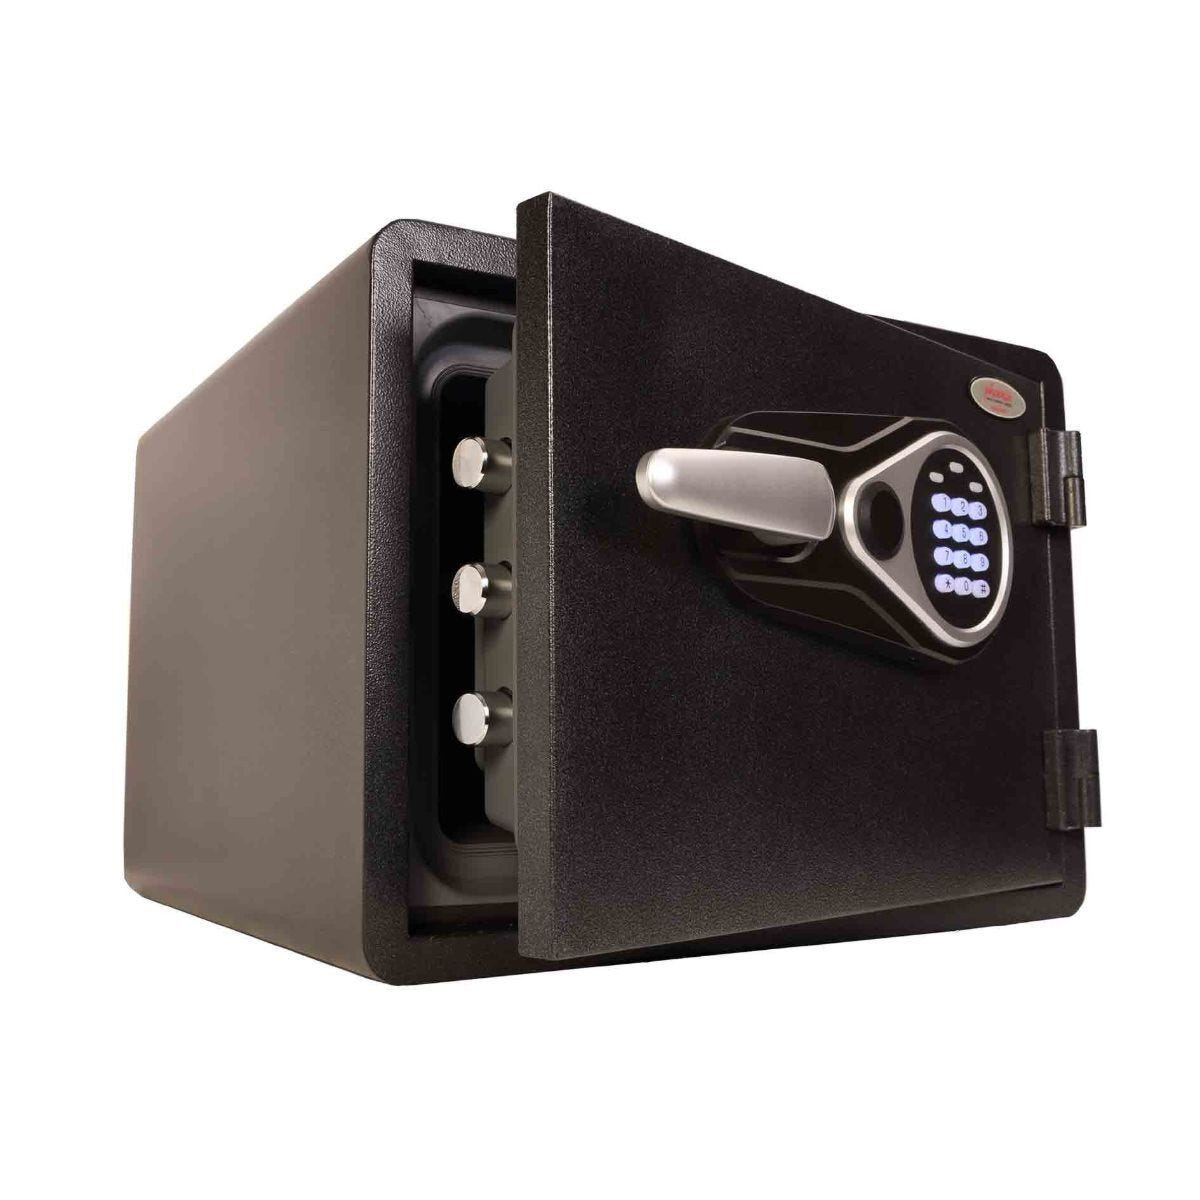 Phoenix Titan Aqua FS1291E Water Fire and Security Safe with Electronic Lock Size 1